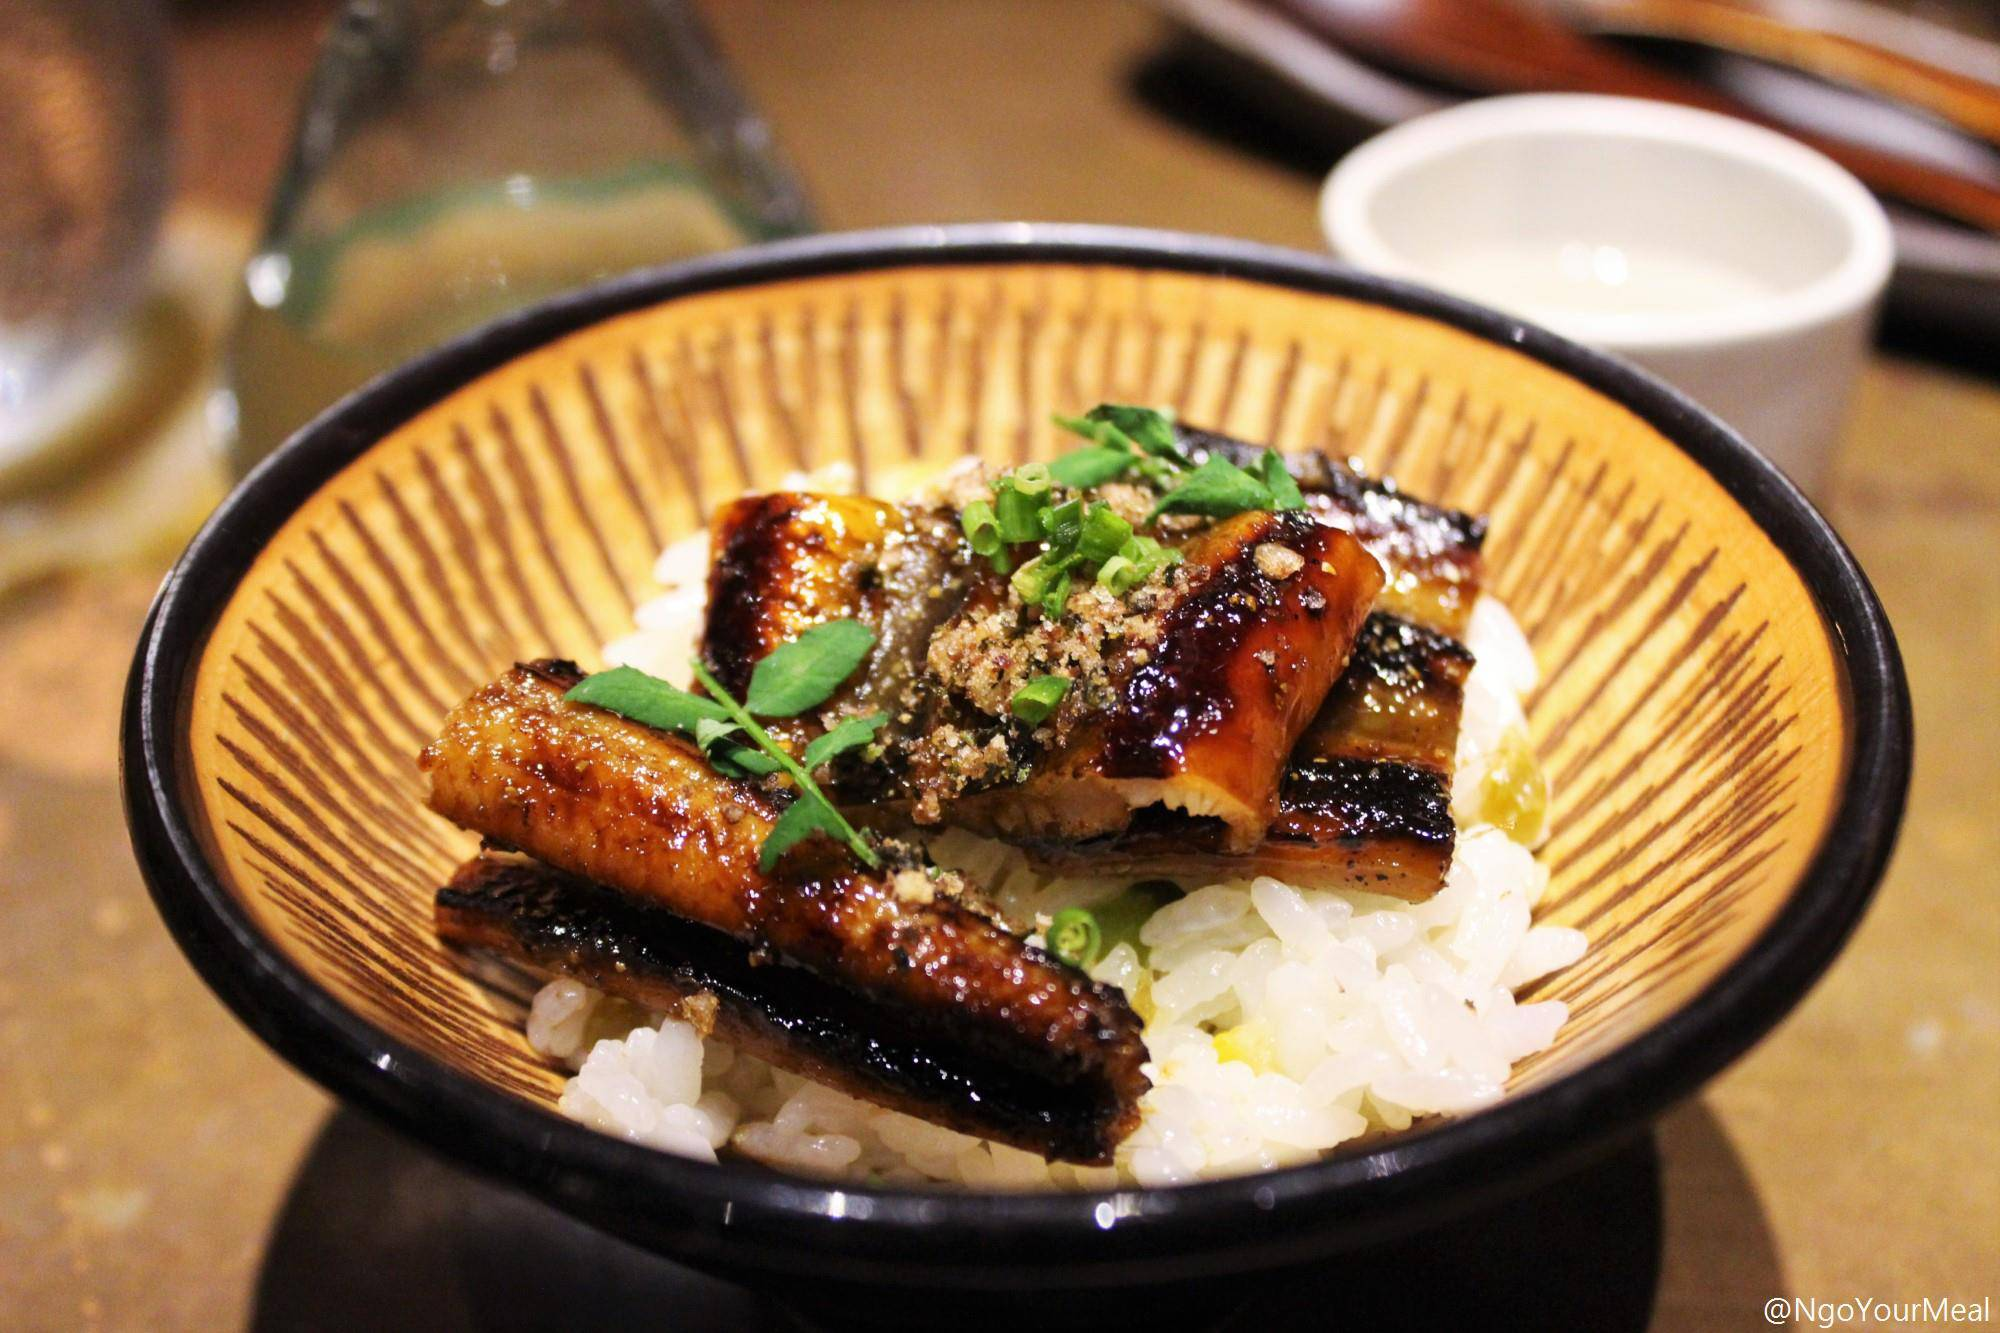 Caramelized Eel from Japan with Seaweed and Soy at Mecha Uma in the Philippines